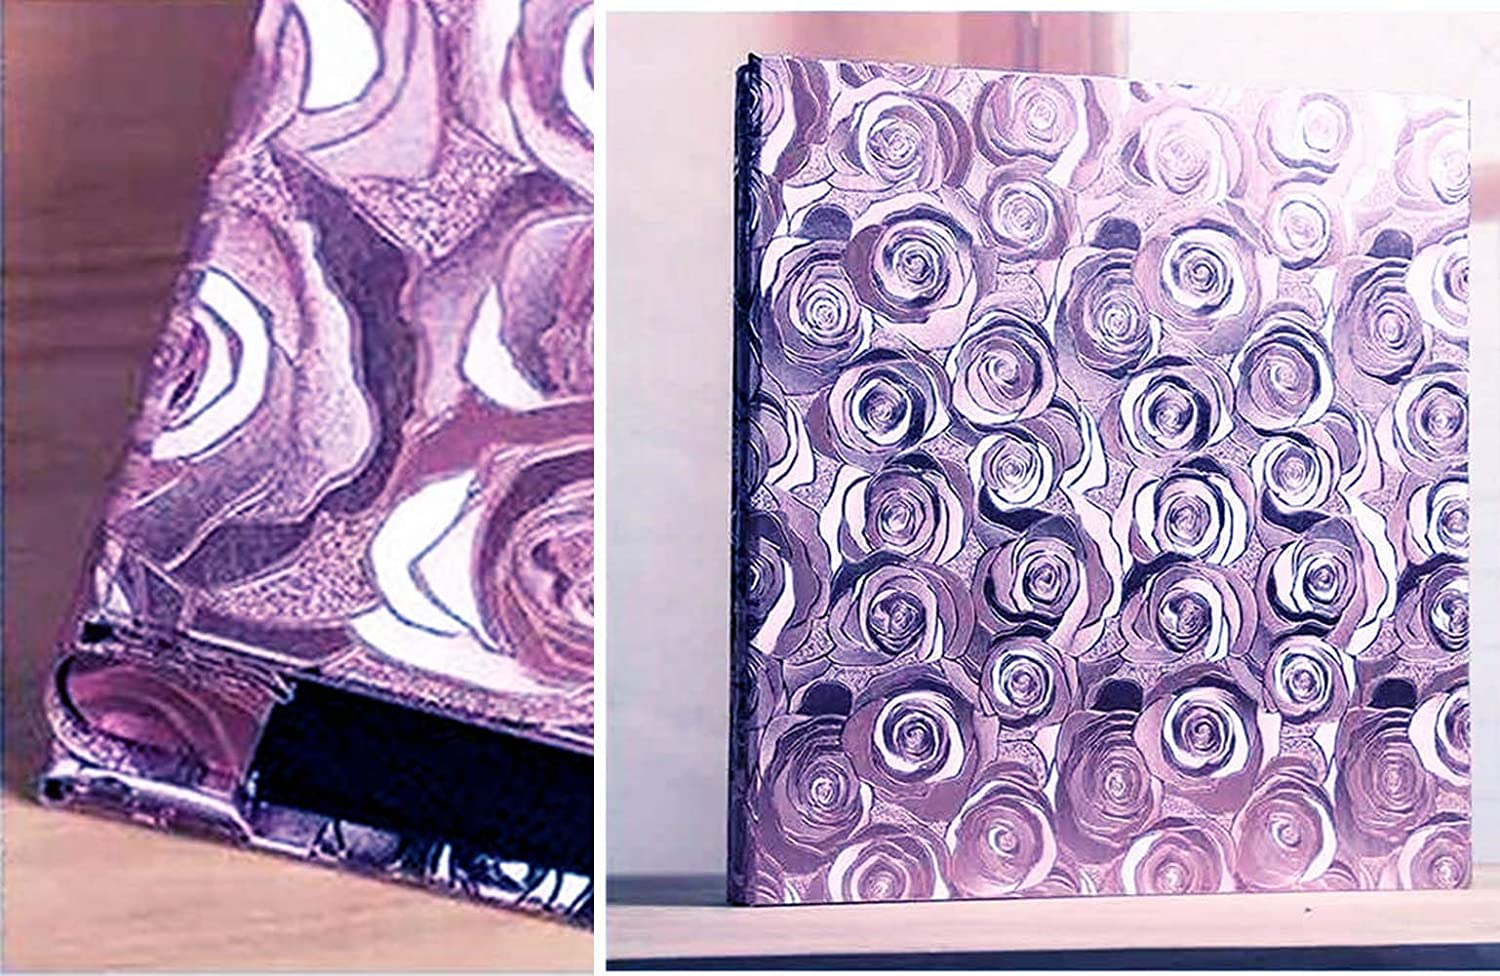 Large Capacity Deluxe Customizable XIHOME Premium Frame Cover Large Family Wedding Anniversary Baby Vacation Photo Album 600 Pockets Holds Bound Multi-Directional 4x6 Photos 5 Per Page Pink-Purple Rose